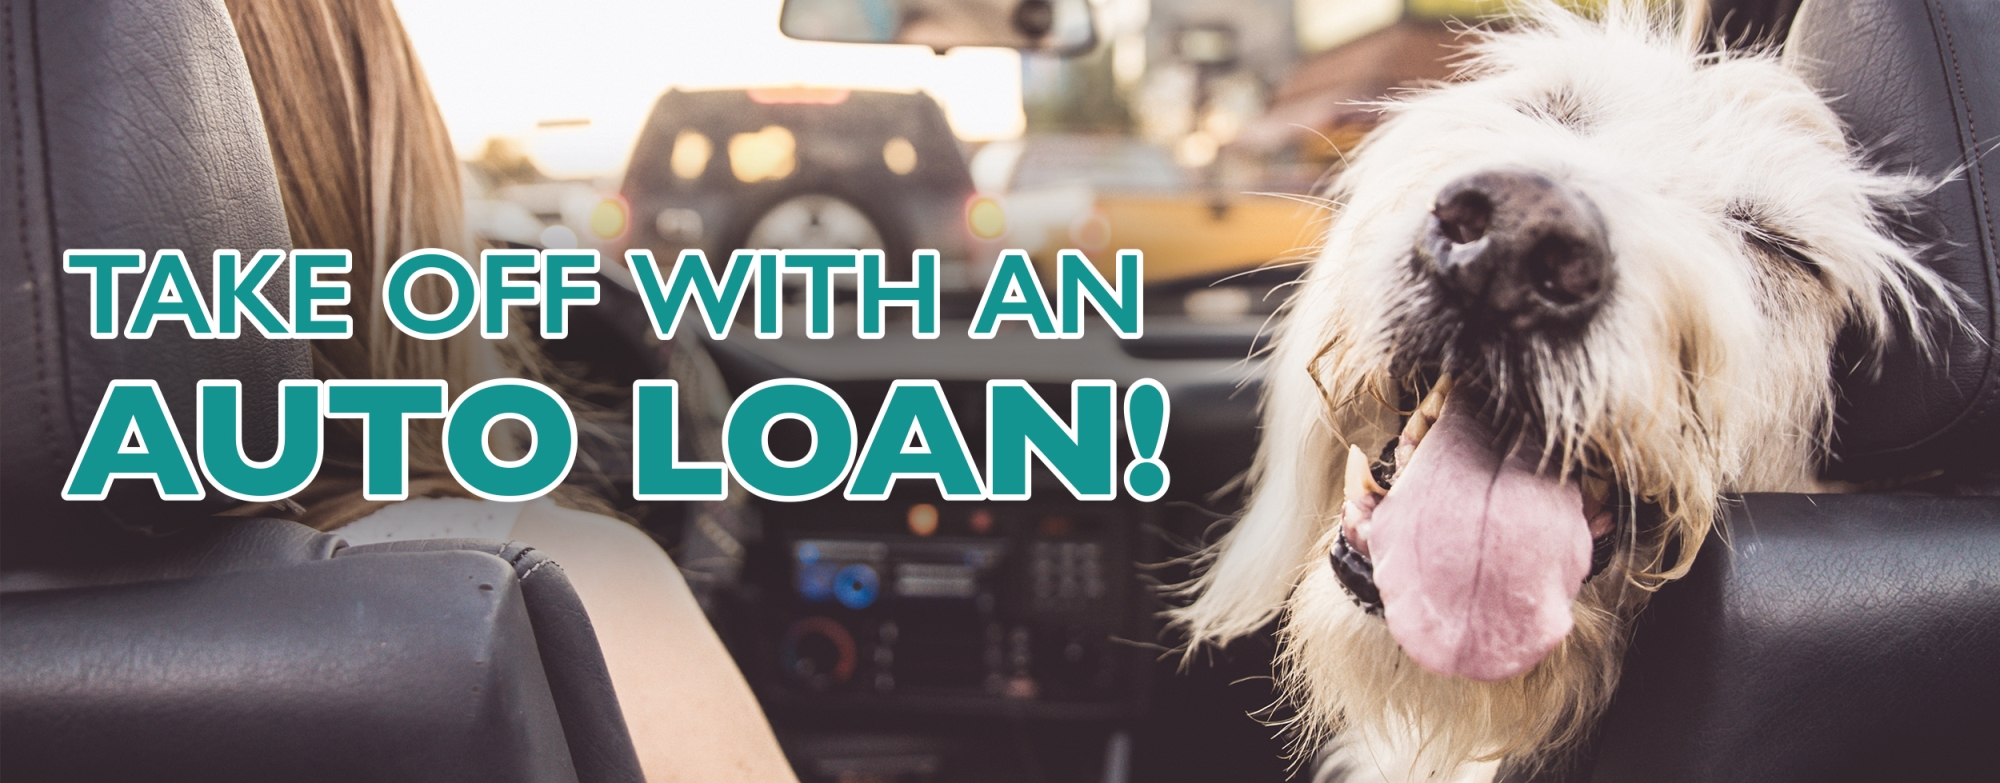 Auto_Loan_Resources